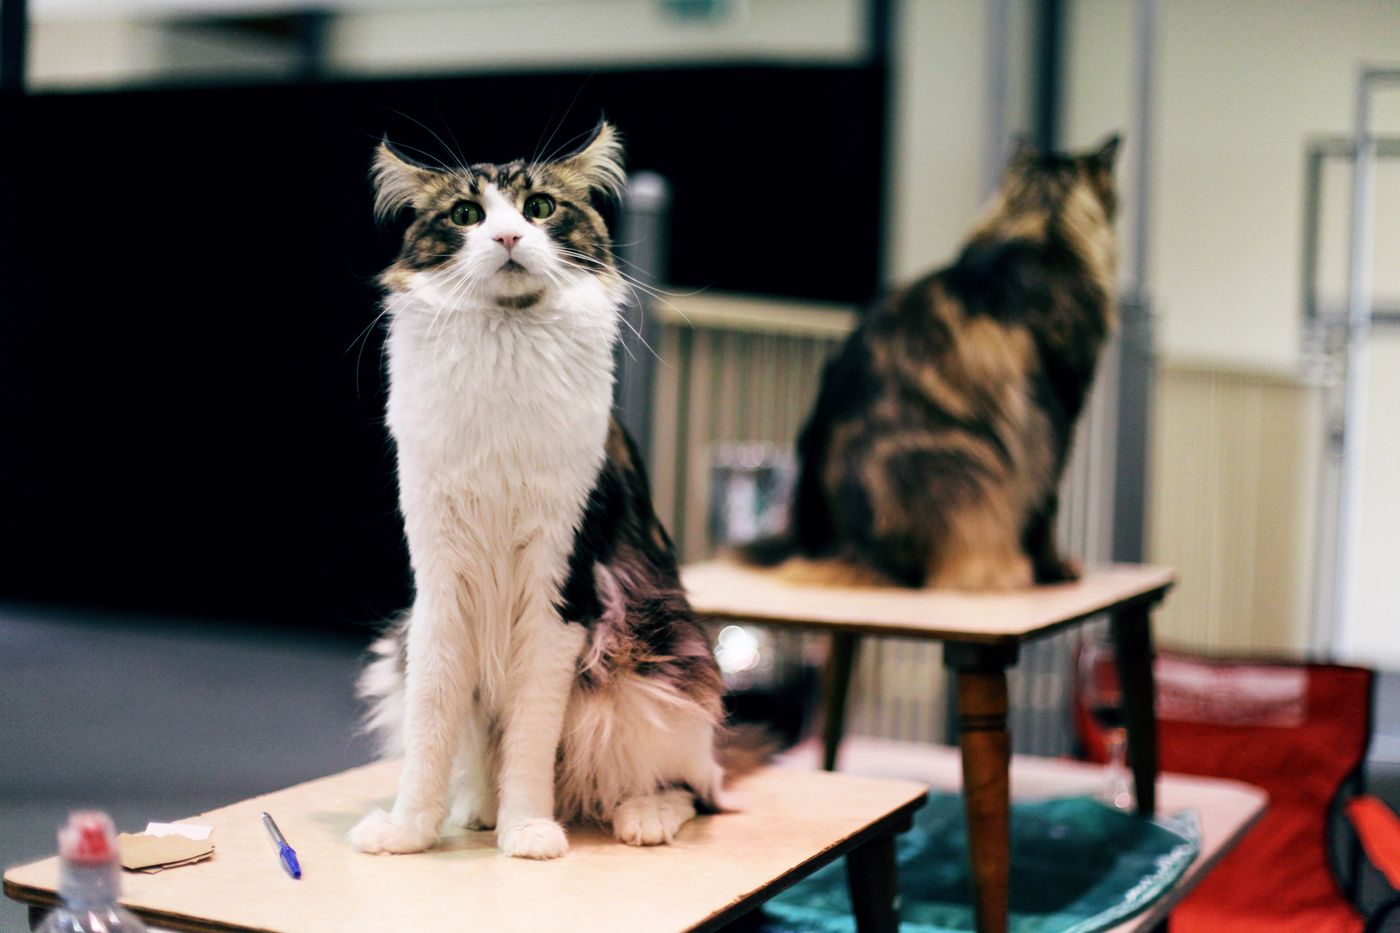 Ready for the competition #cats #eastershow #animals #pets